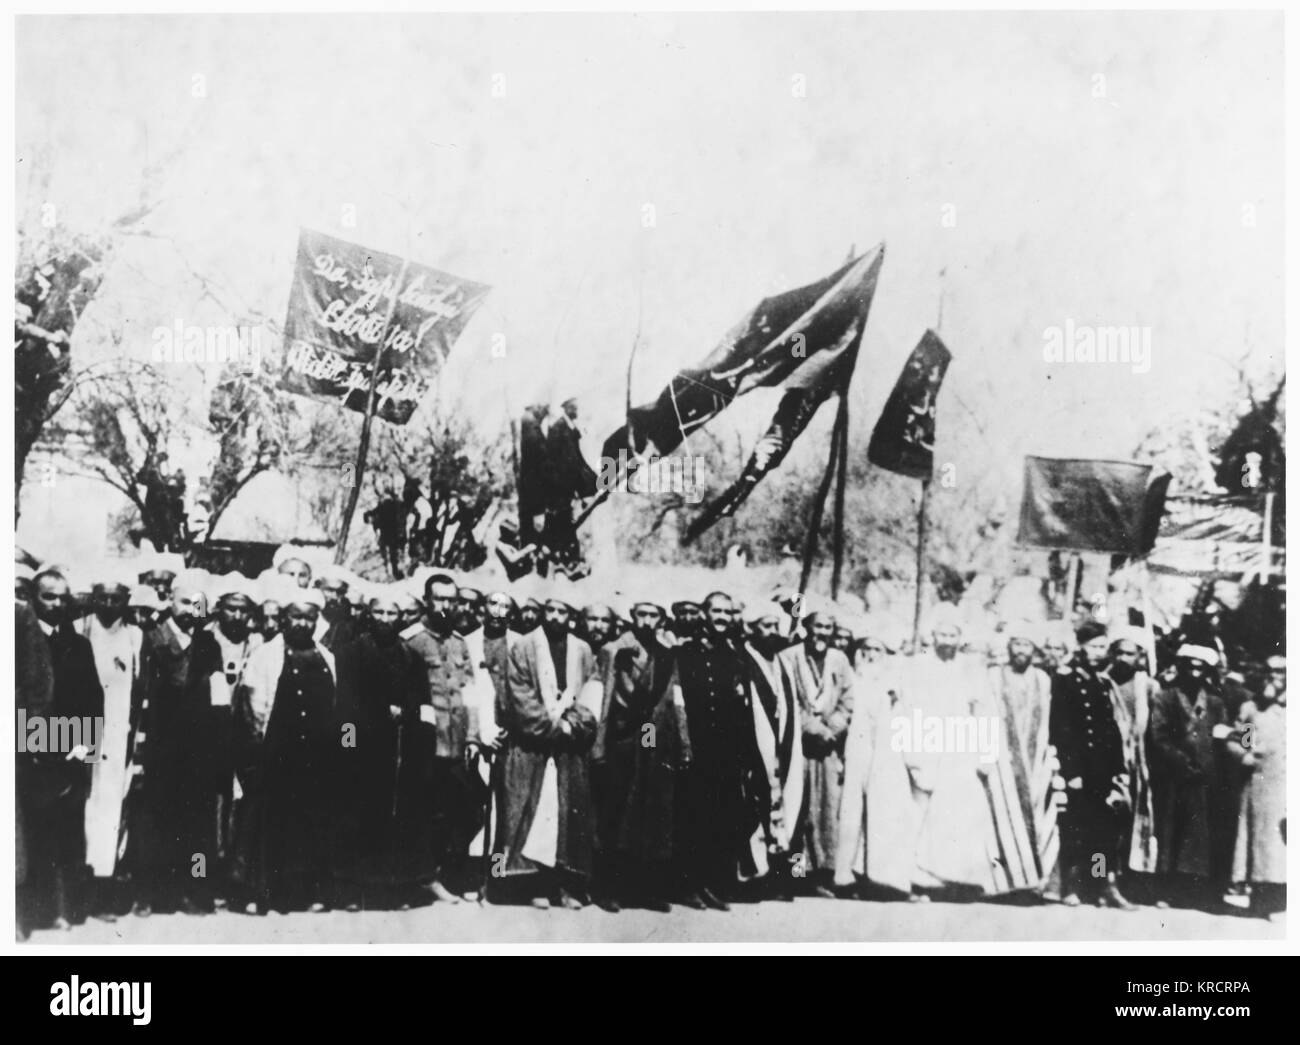 revolution march 1917 The russian revolution in march 1917 there where many reasons that led to the fall of tsarism in march 1917 one of them was tsars' incompetence and the fact that he was incapable of finding effective ministers, or of supporting those he appointed.